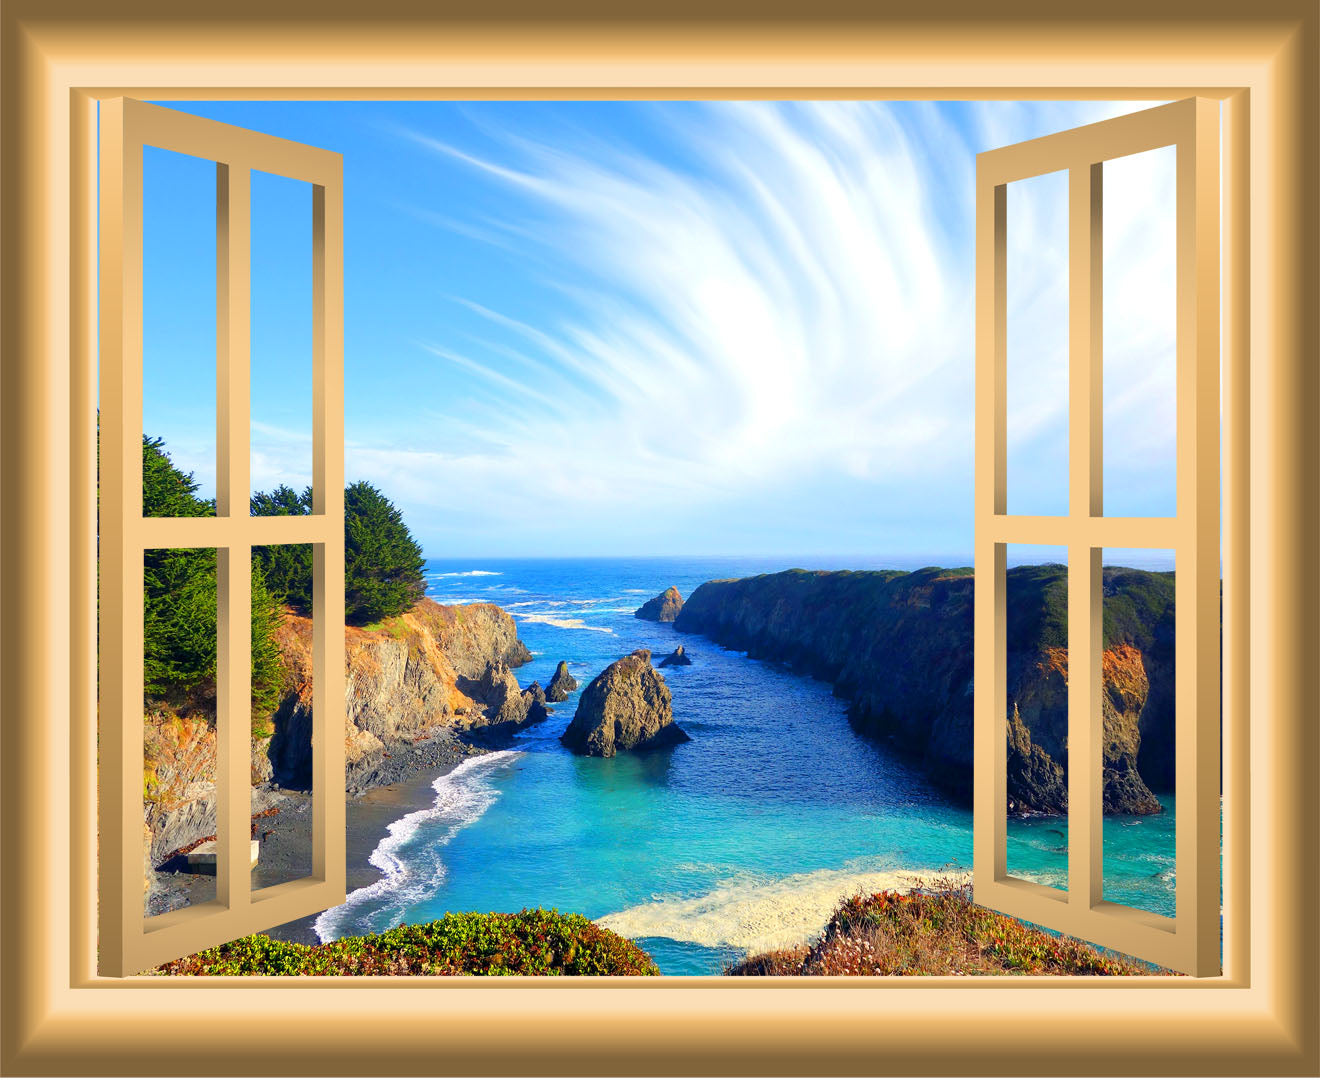 VWAQ Ocean Window 3D Wall Decal Seaside Decor Peel and Stick Mural - NW33 - VWAQ Vinyl Wall Art Quotes and Prints